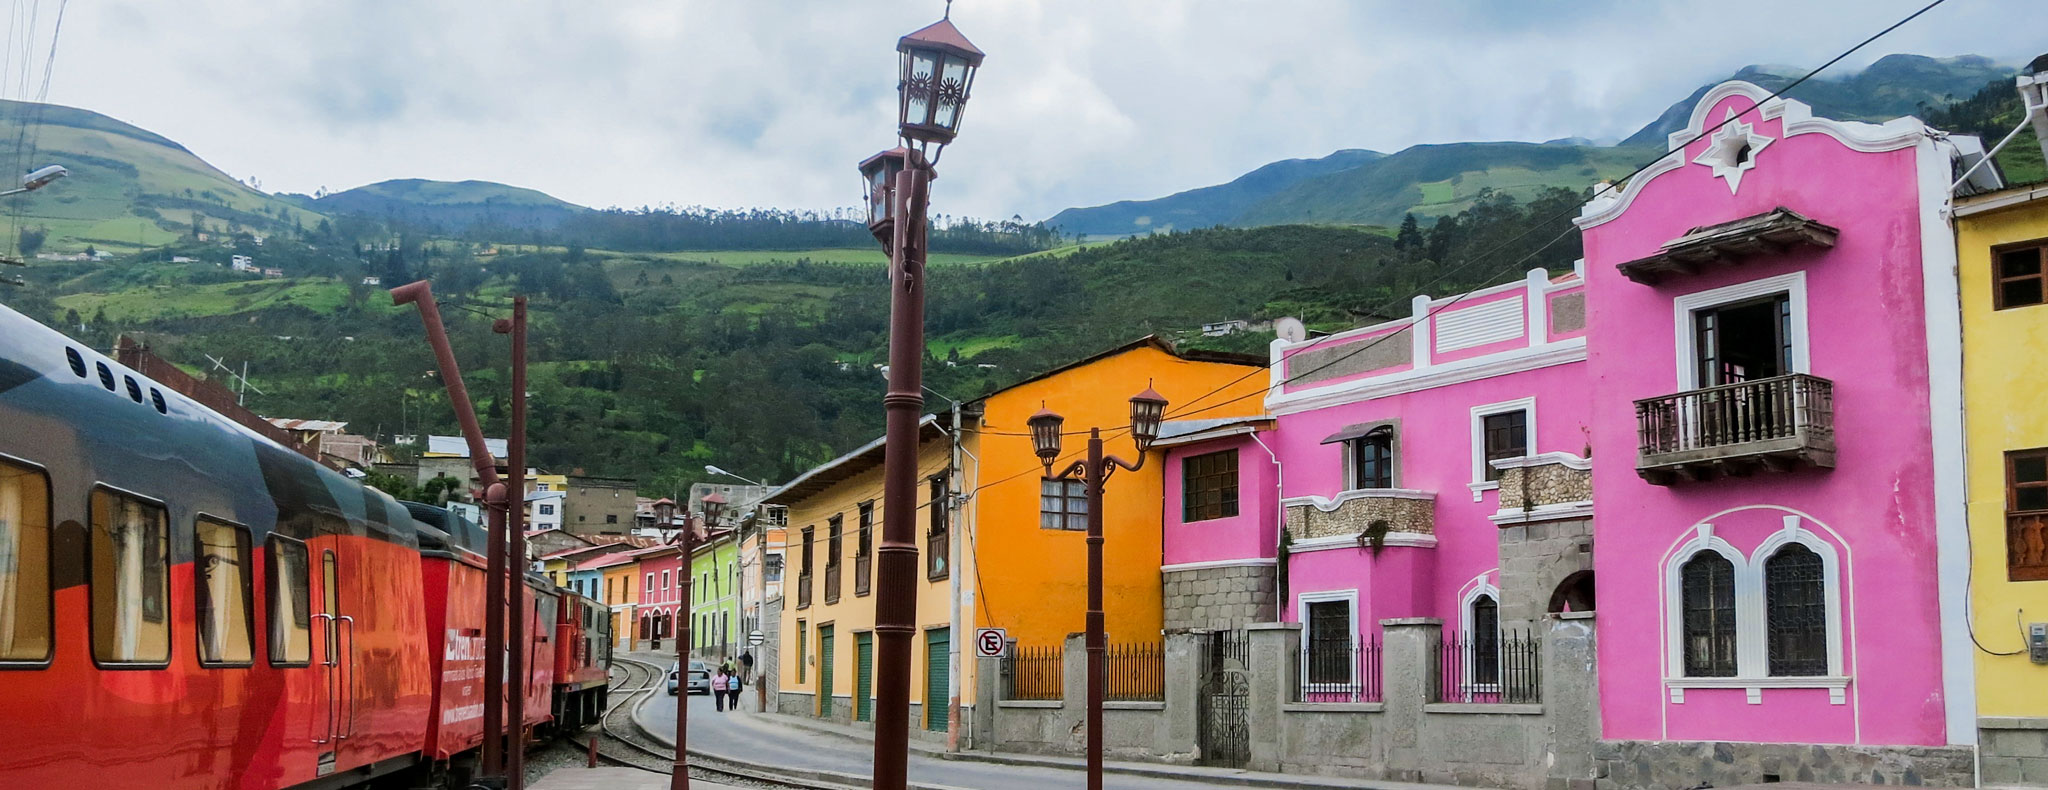 Colorful houses at a railway station in Alausí, Ecuador